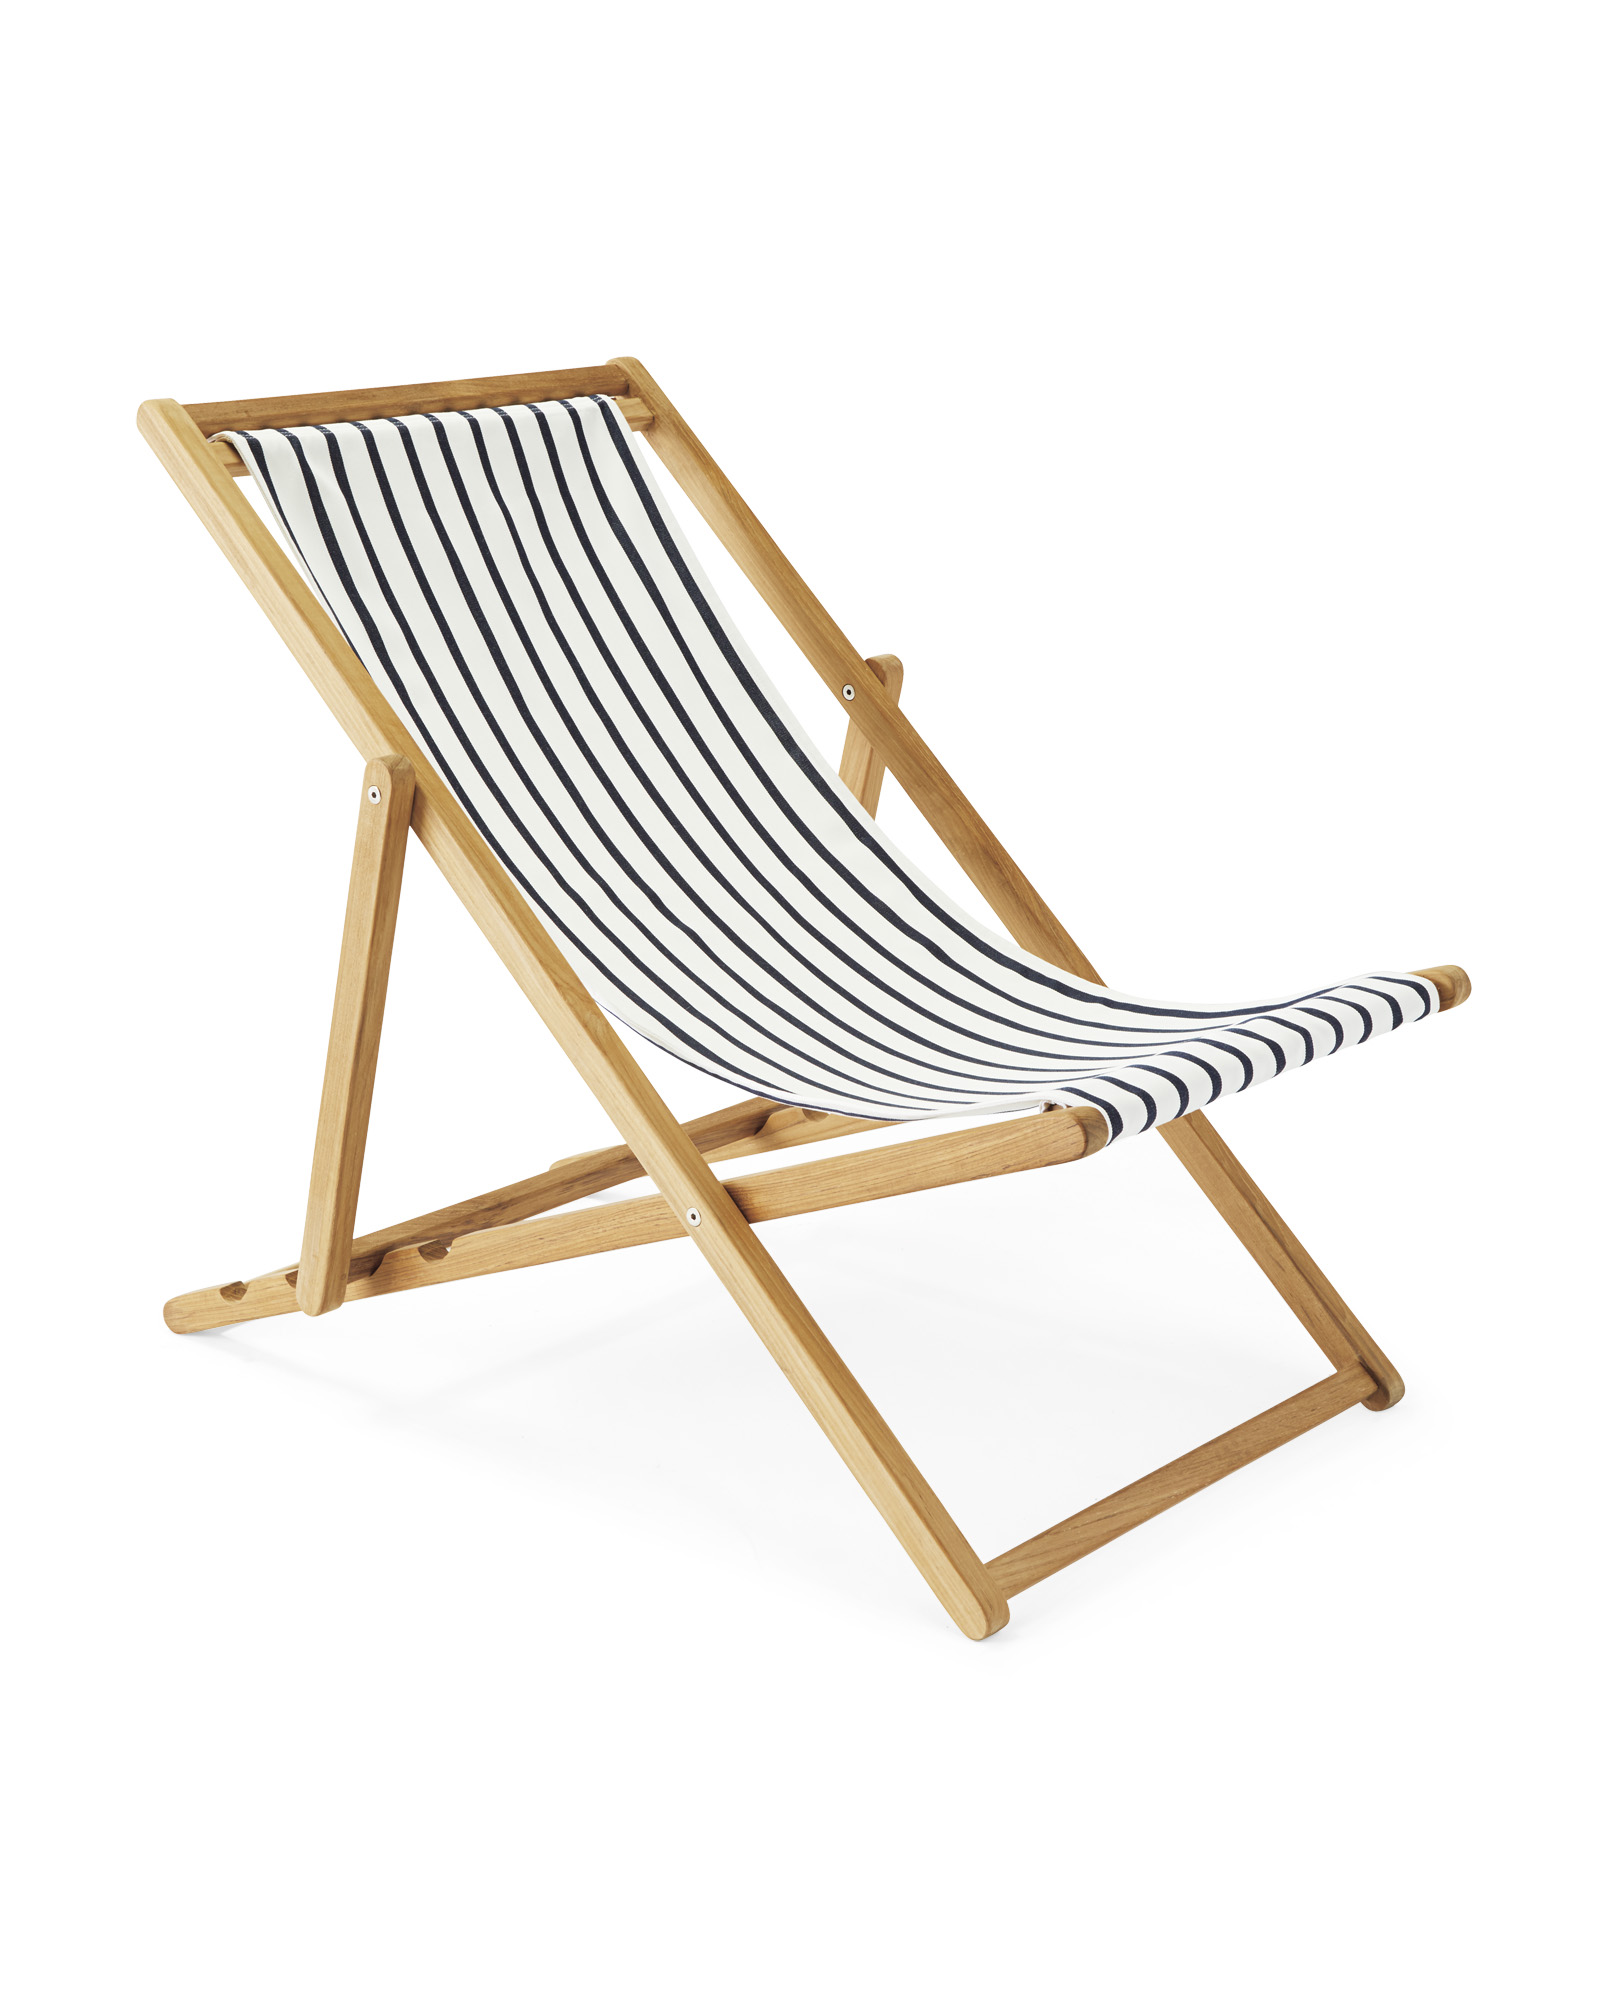 Furn_Sling_Chair_Lido_Stripe_MV_1304_Crop_SH.jpg